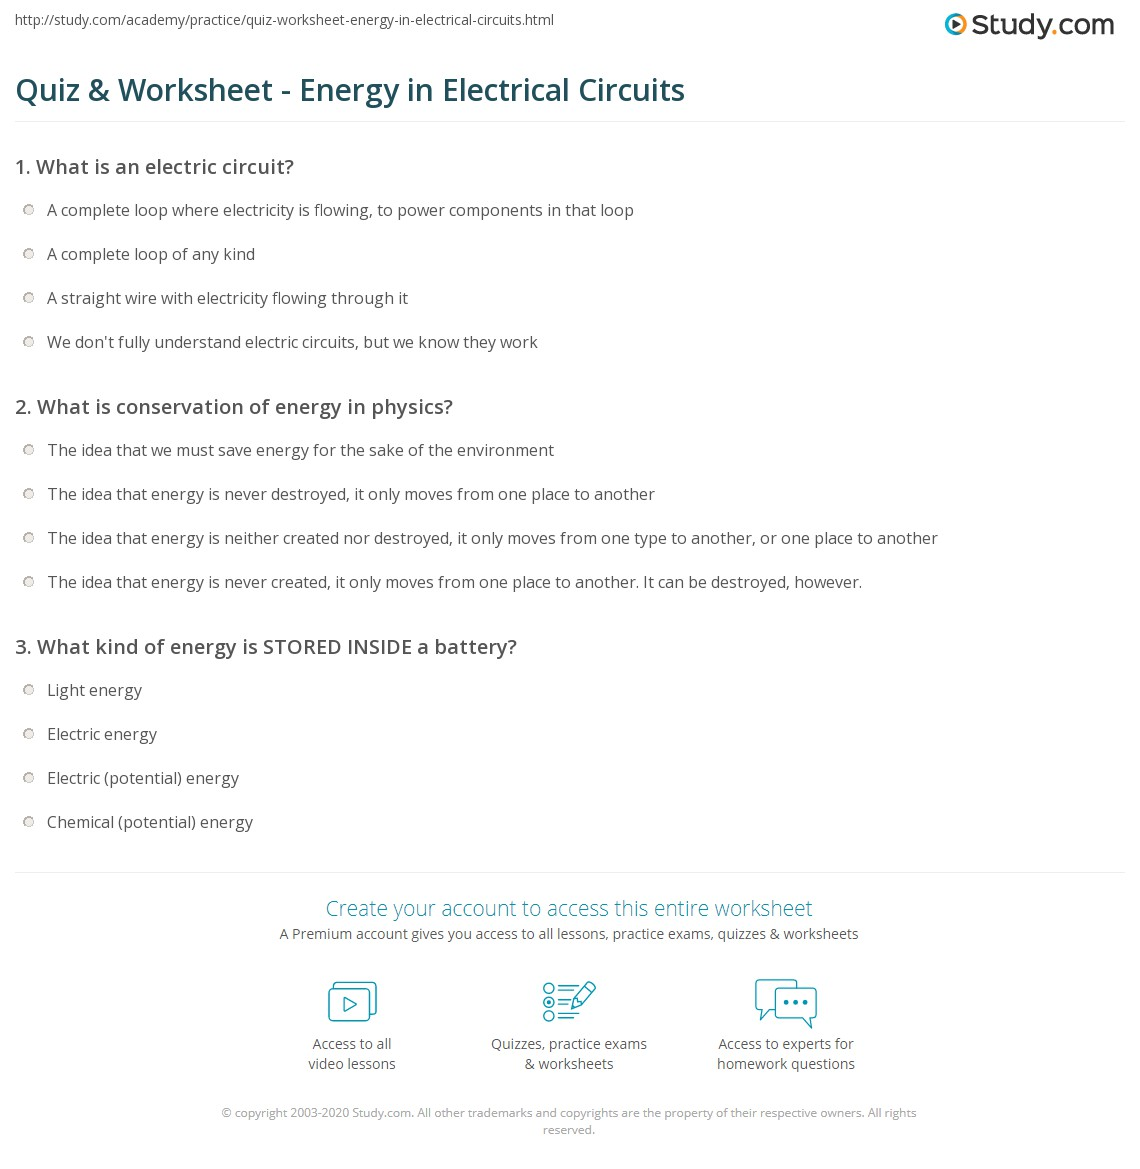 Quiz Worksheet Energy in Electrical Circuits – Energy Conservation Worksheet